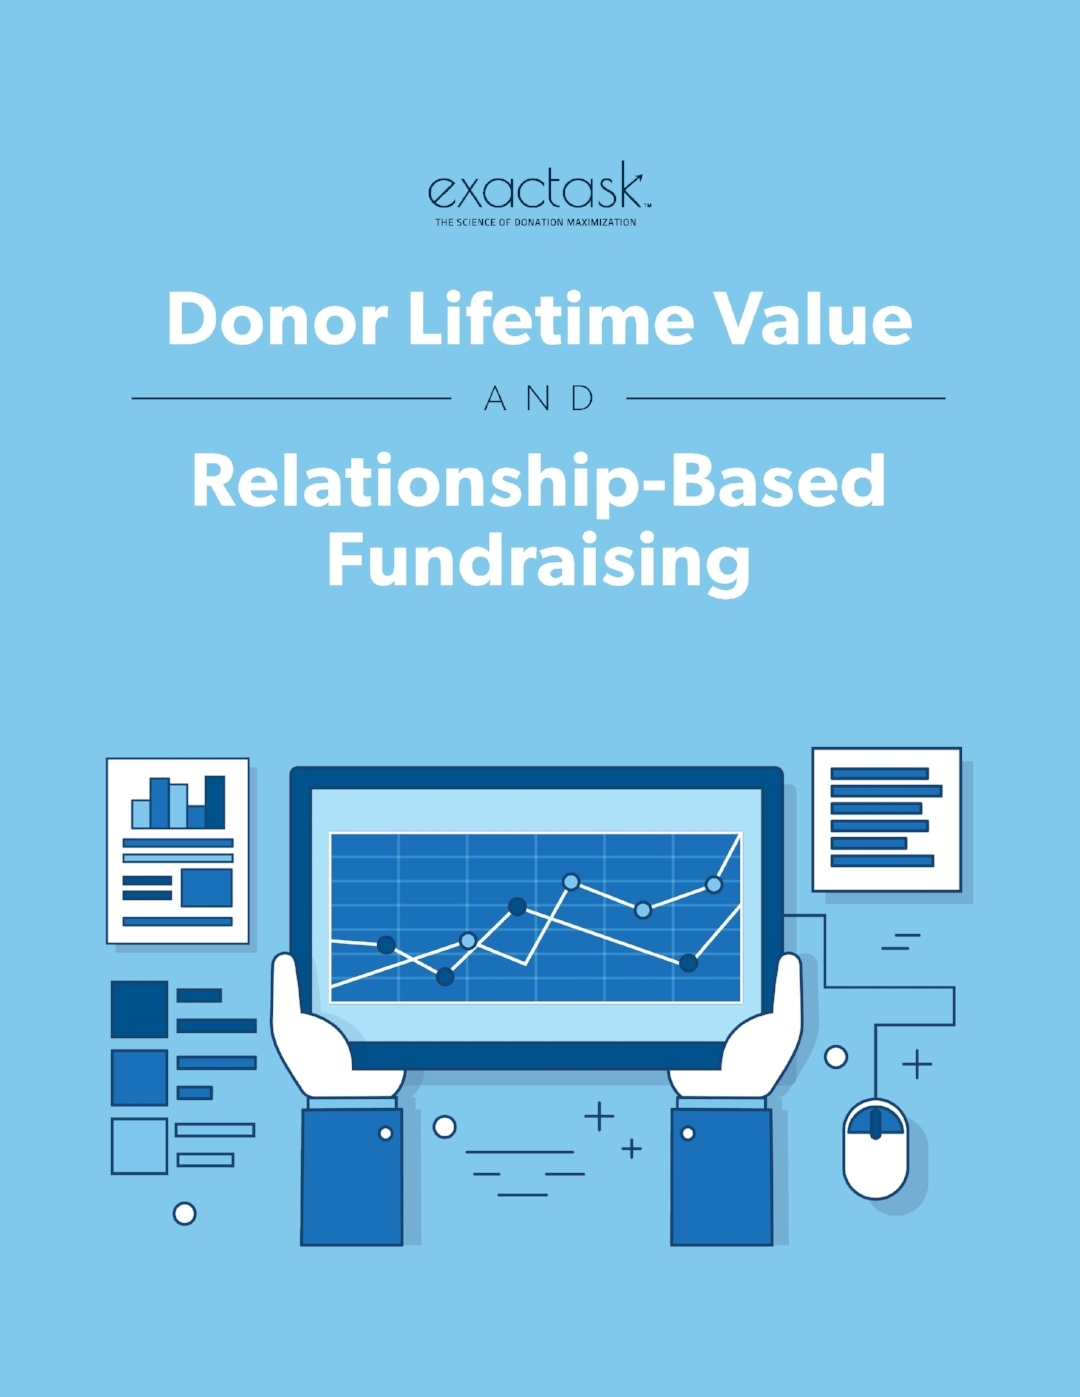 Donor_Lifetime_Value_&_Relationship_Based_Fundraising_Whitepaper-922484-edited.jpg